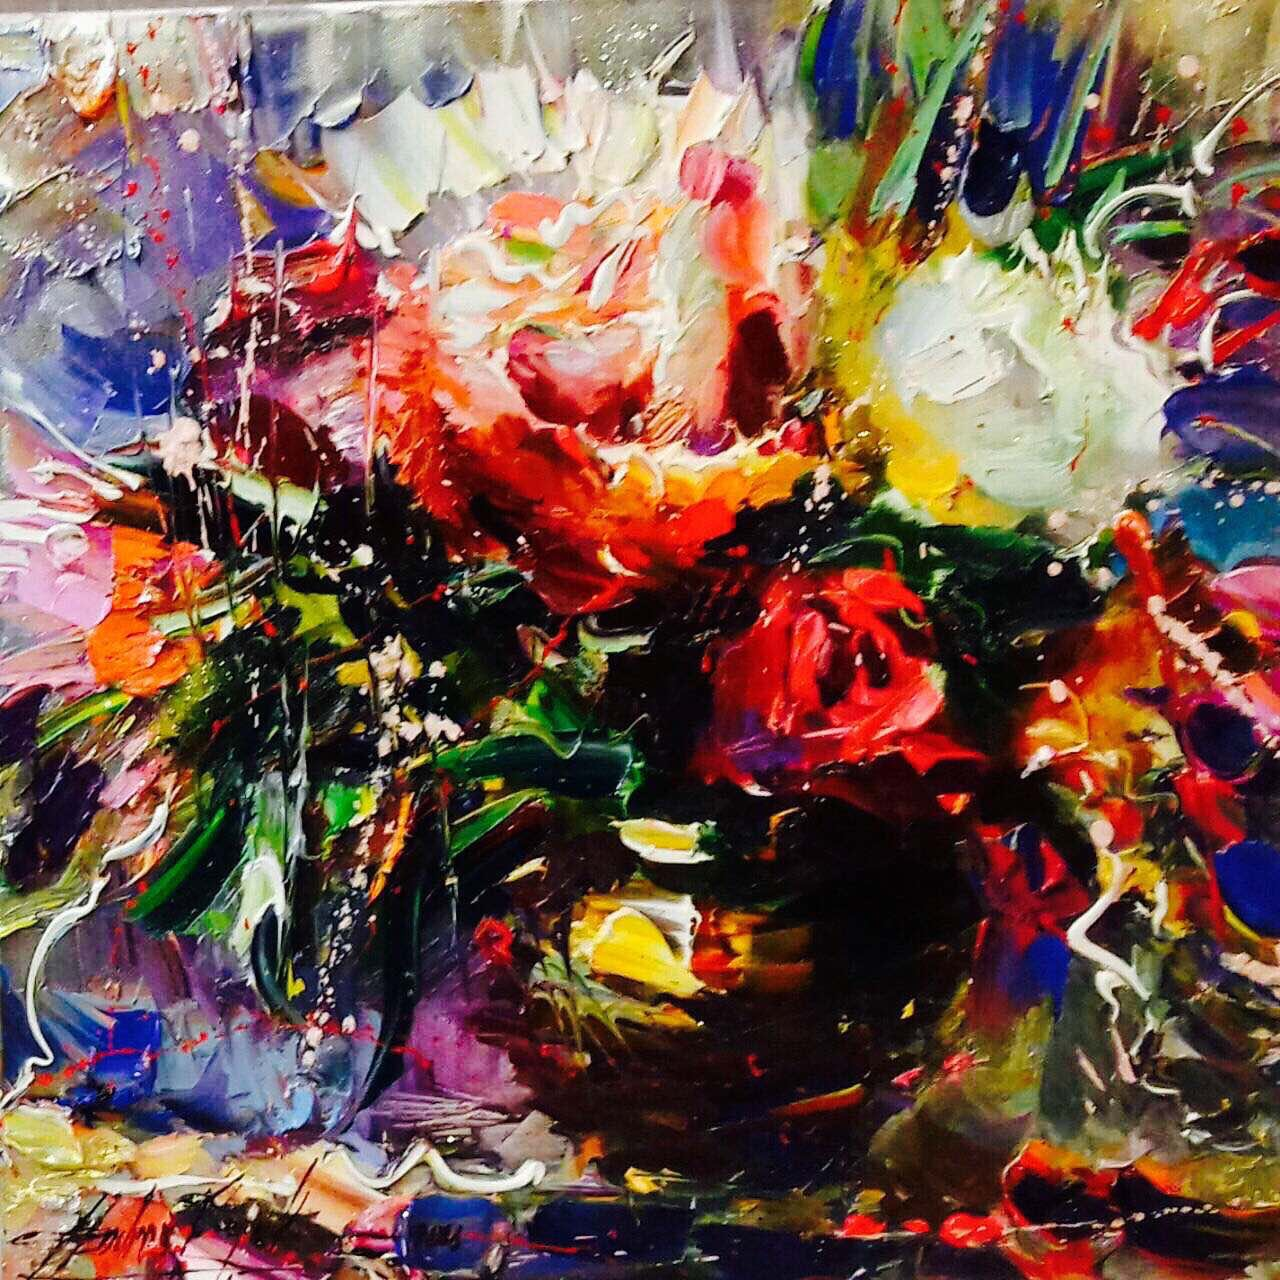 Floral extravaganza artwork by Andrey Figol - art listed for sale on Artplode